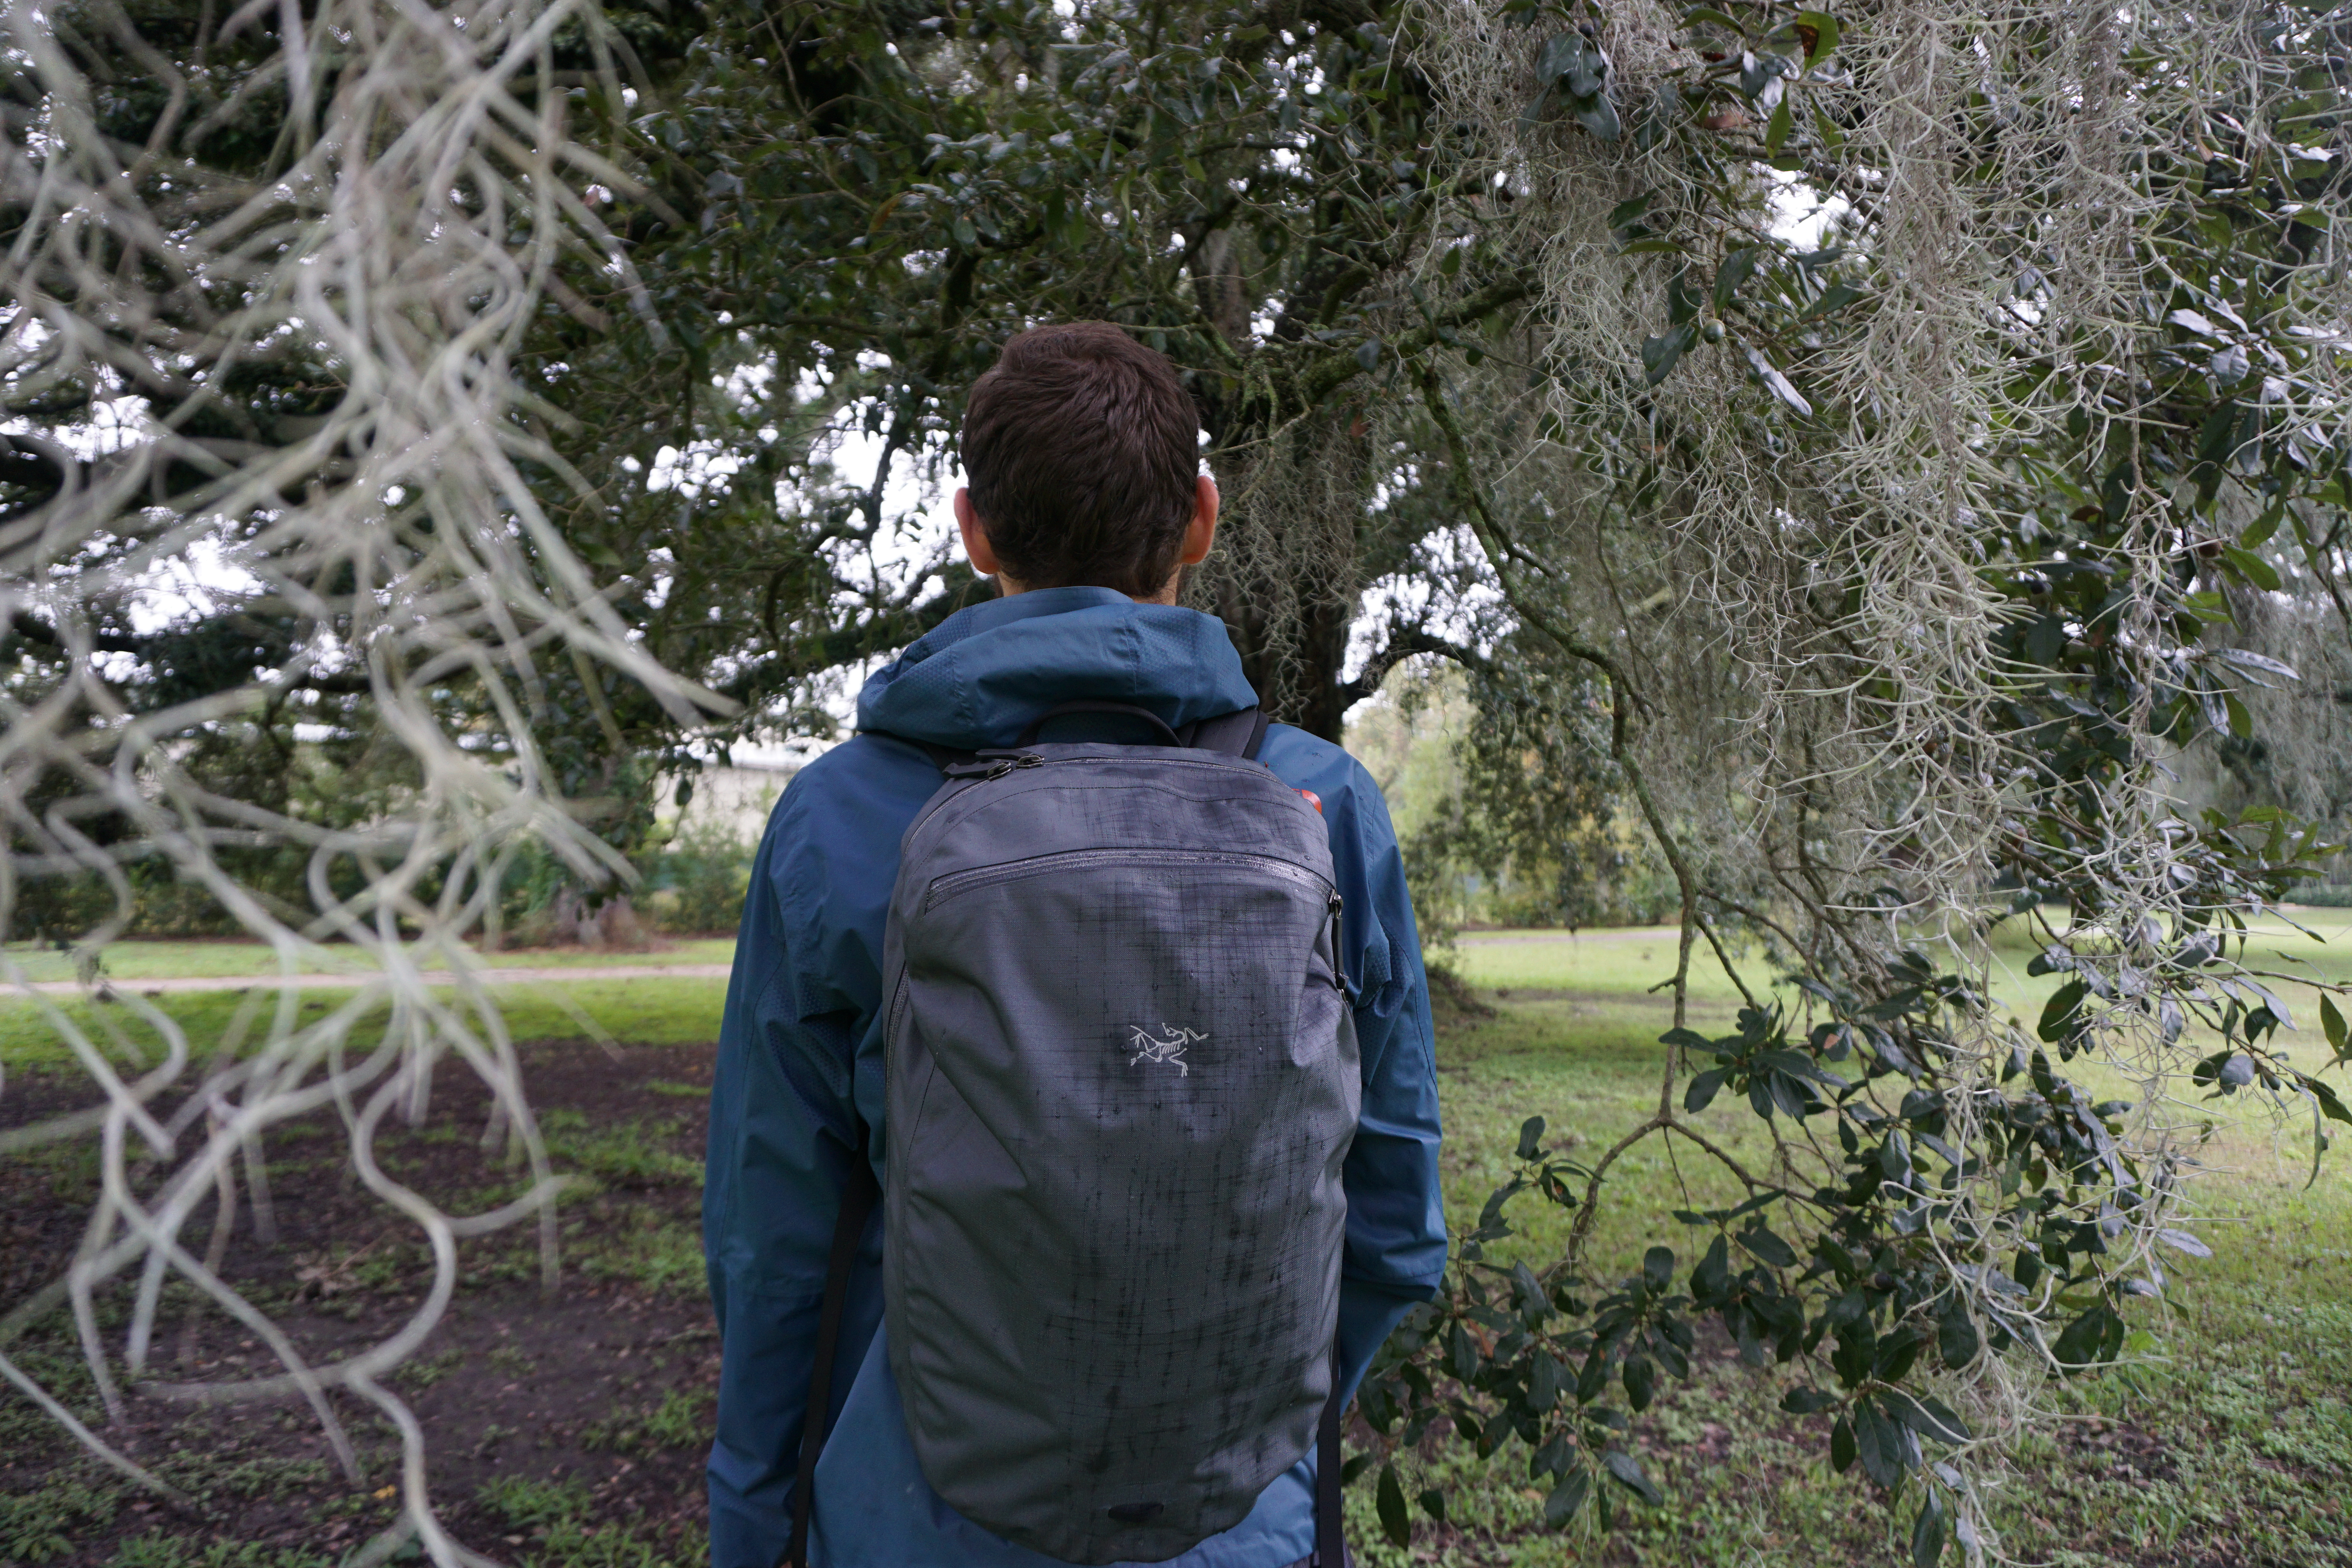 Arc'teryx Granville zip 16 weather resistant waterproof backpack on body natural light outdoors backpack review